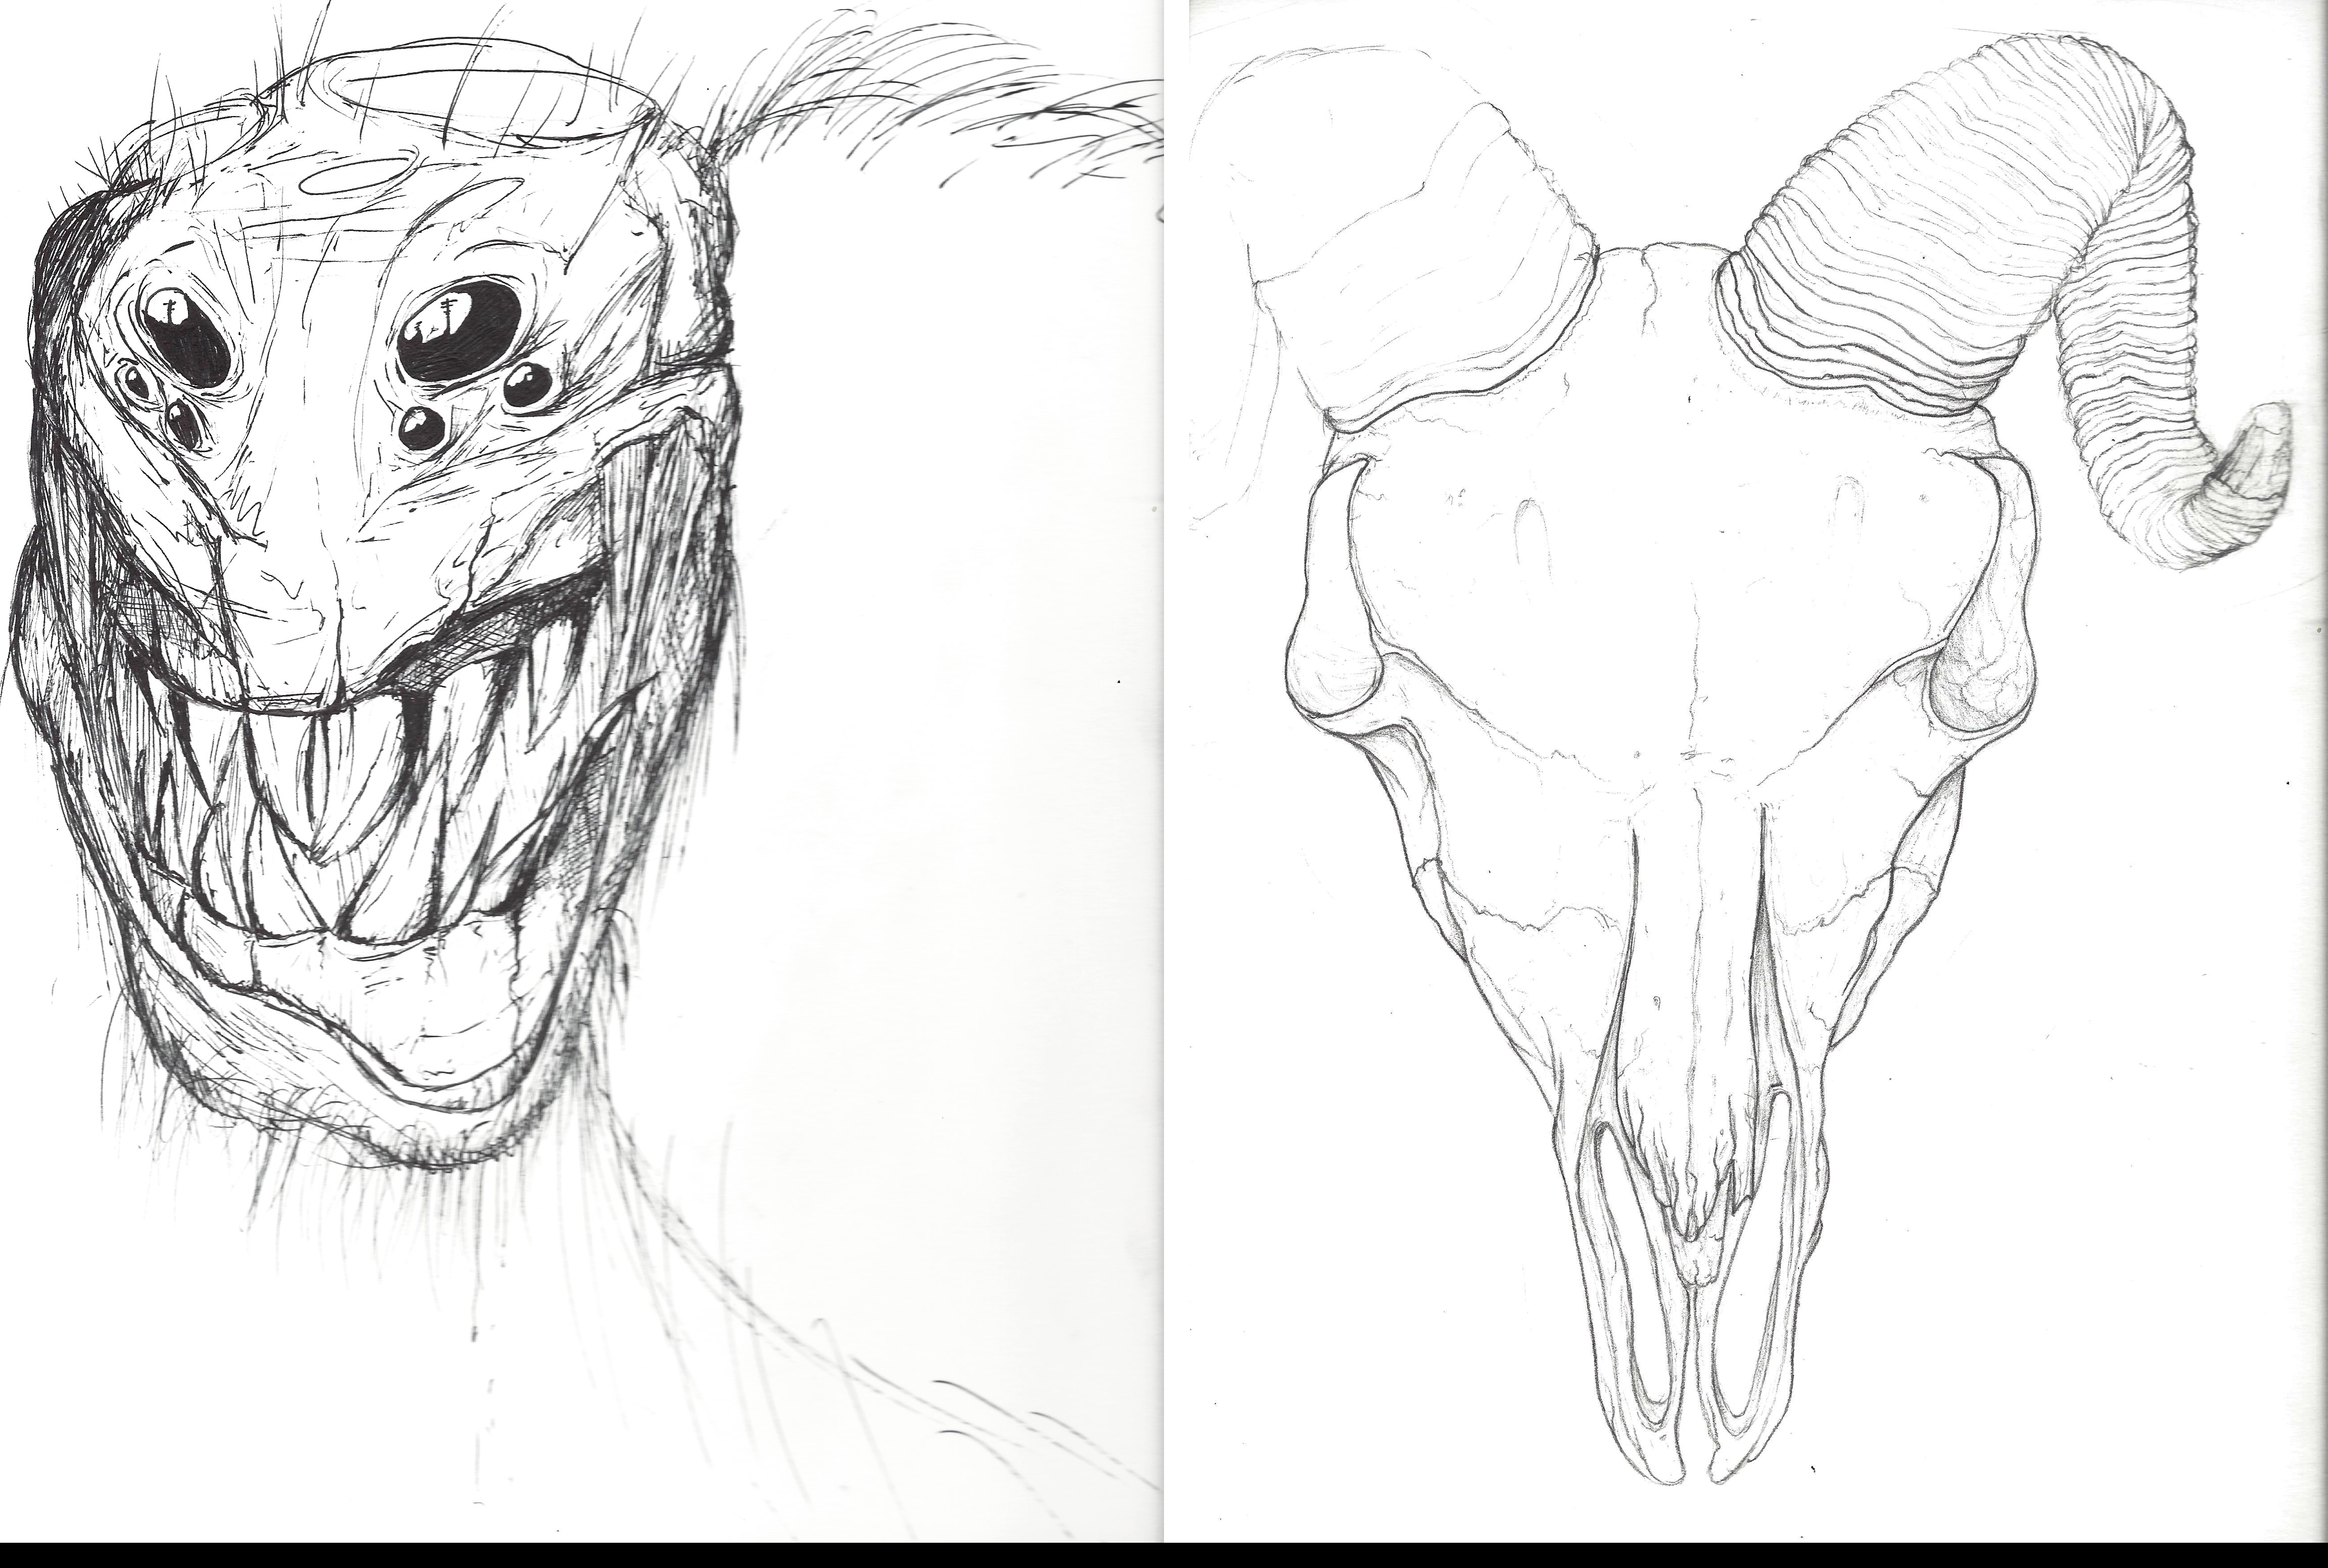 More Random Drawings- Both Unfinished by Shastro